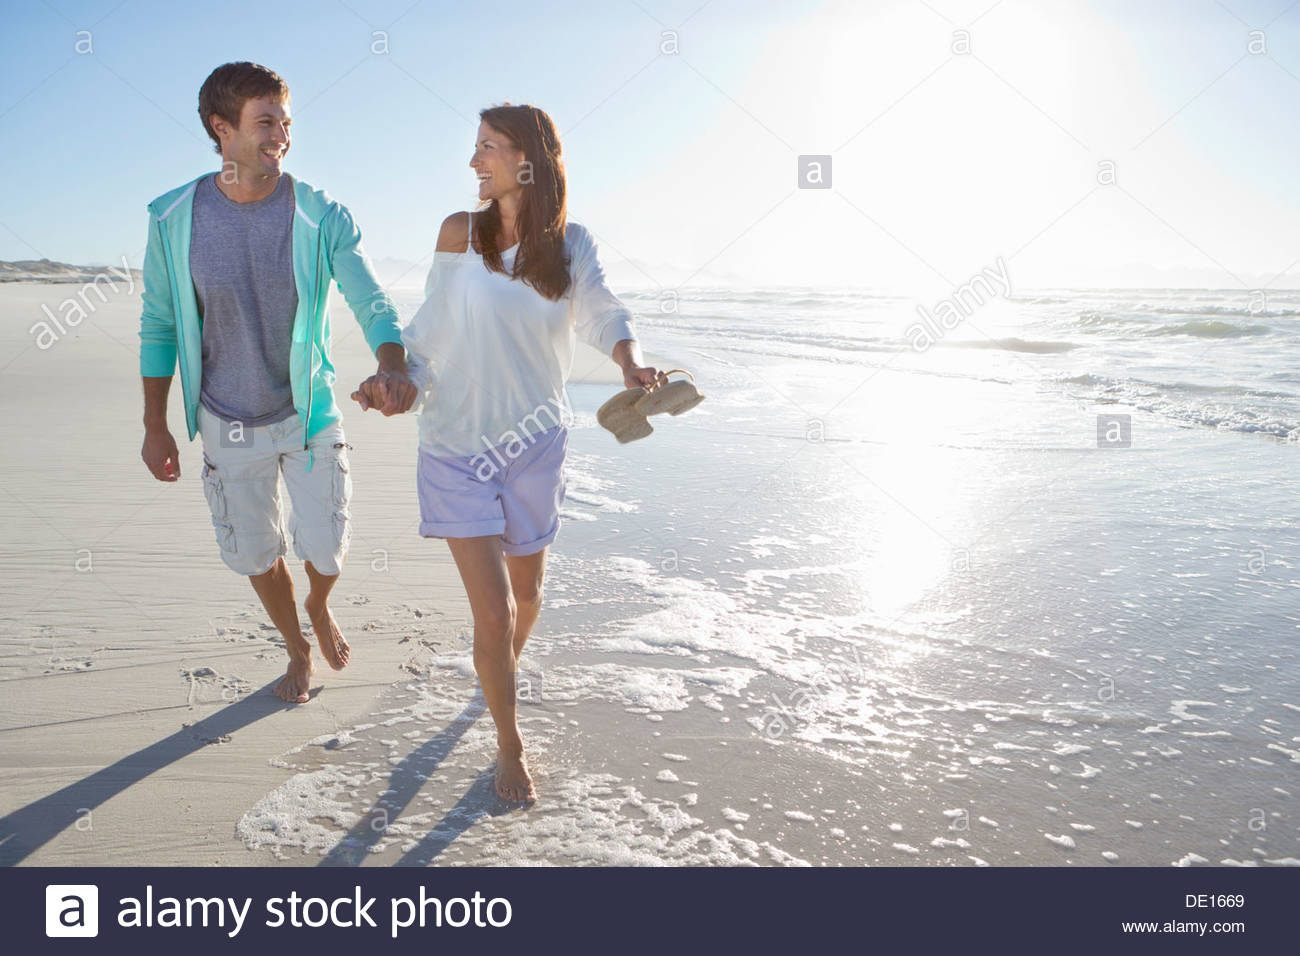 Heureux couple holding hands and walking barefoot on sunny beach Photo Stock